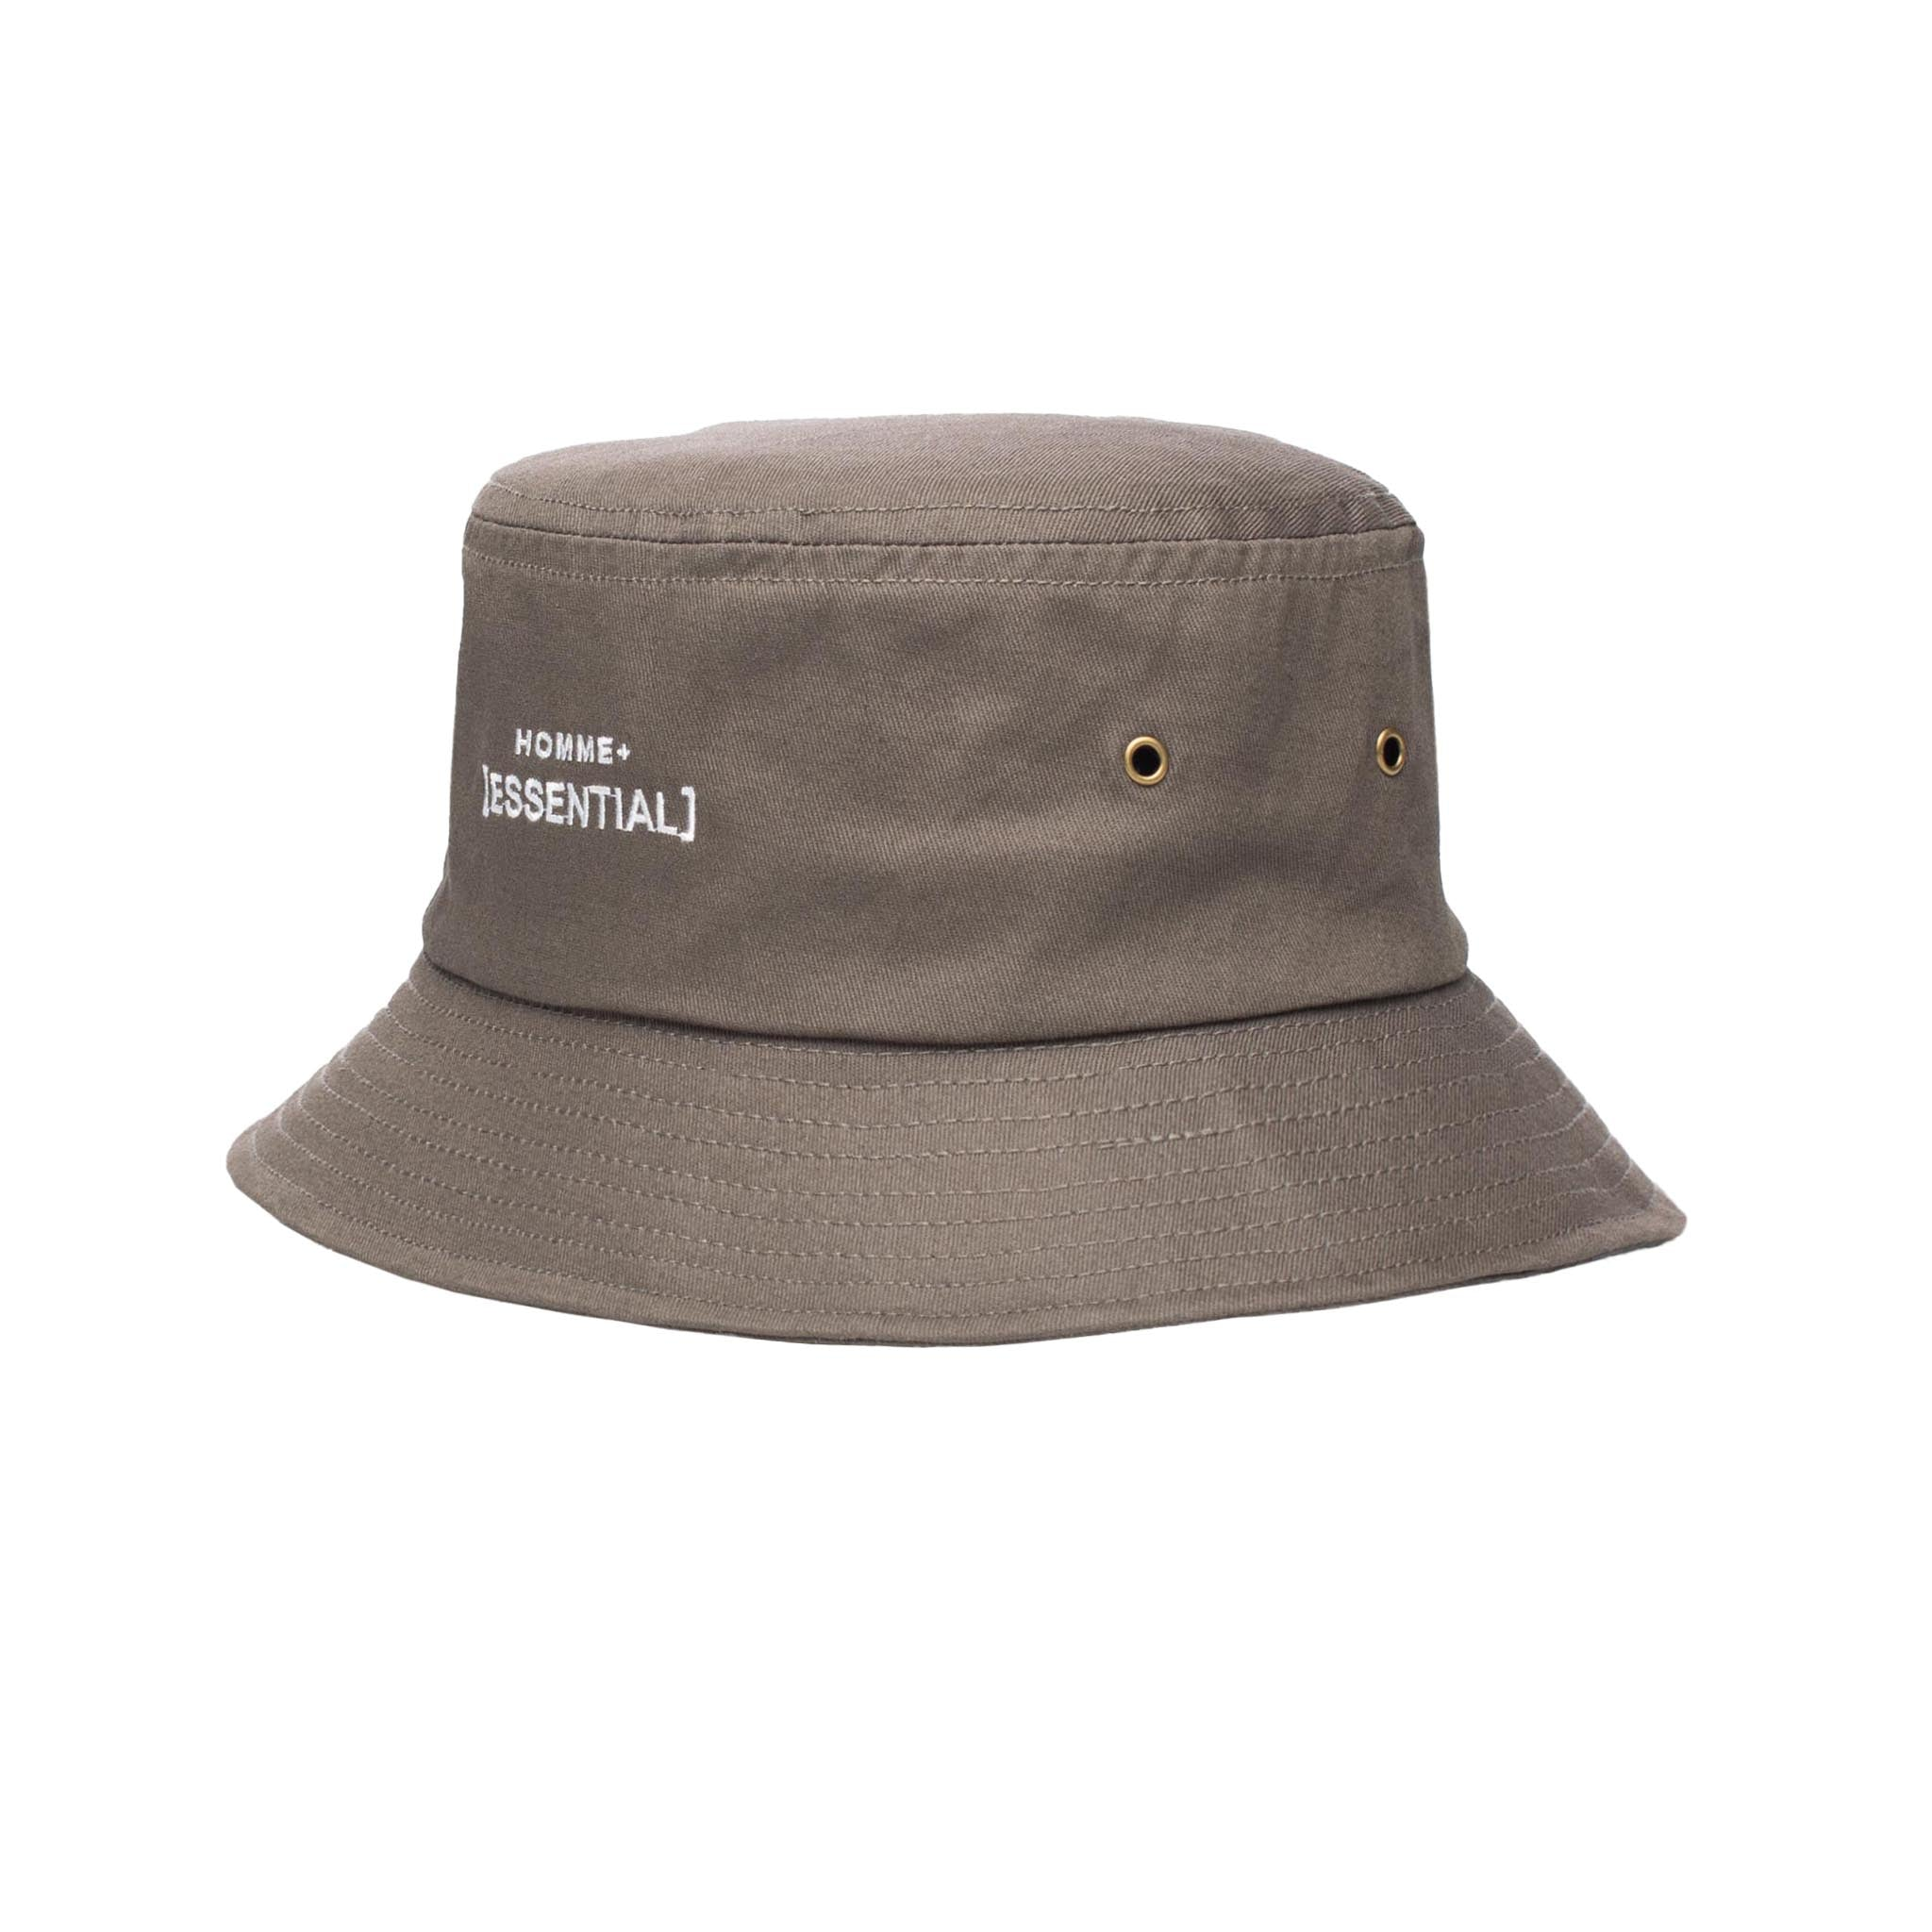 HOMME+ ESSENTIAL Bucket Hat Charcoal/White